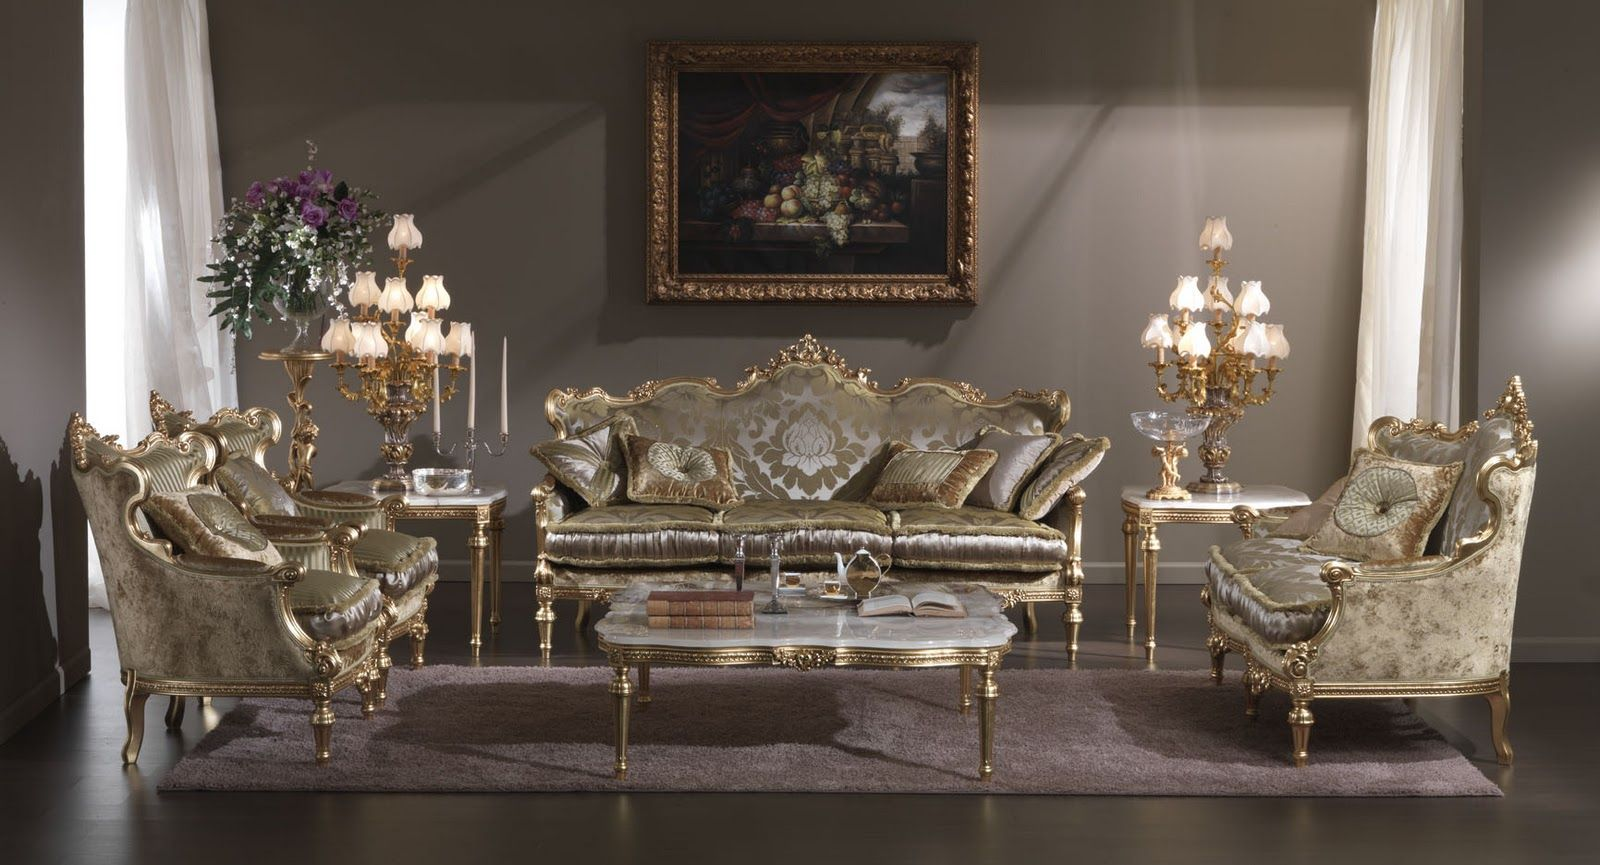 Antique Living Room Designs Pleasing Italian Living Room Furniture   Italian Classic Furniture Decorating Design